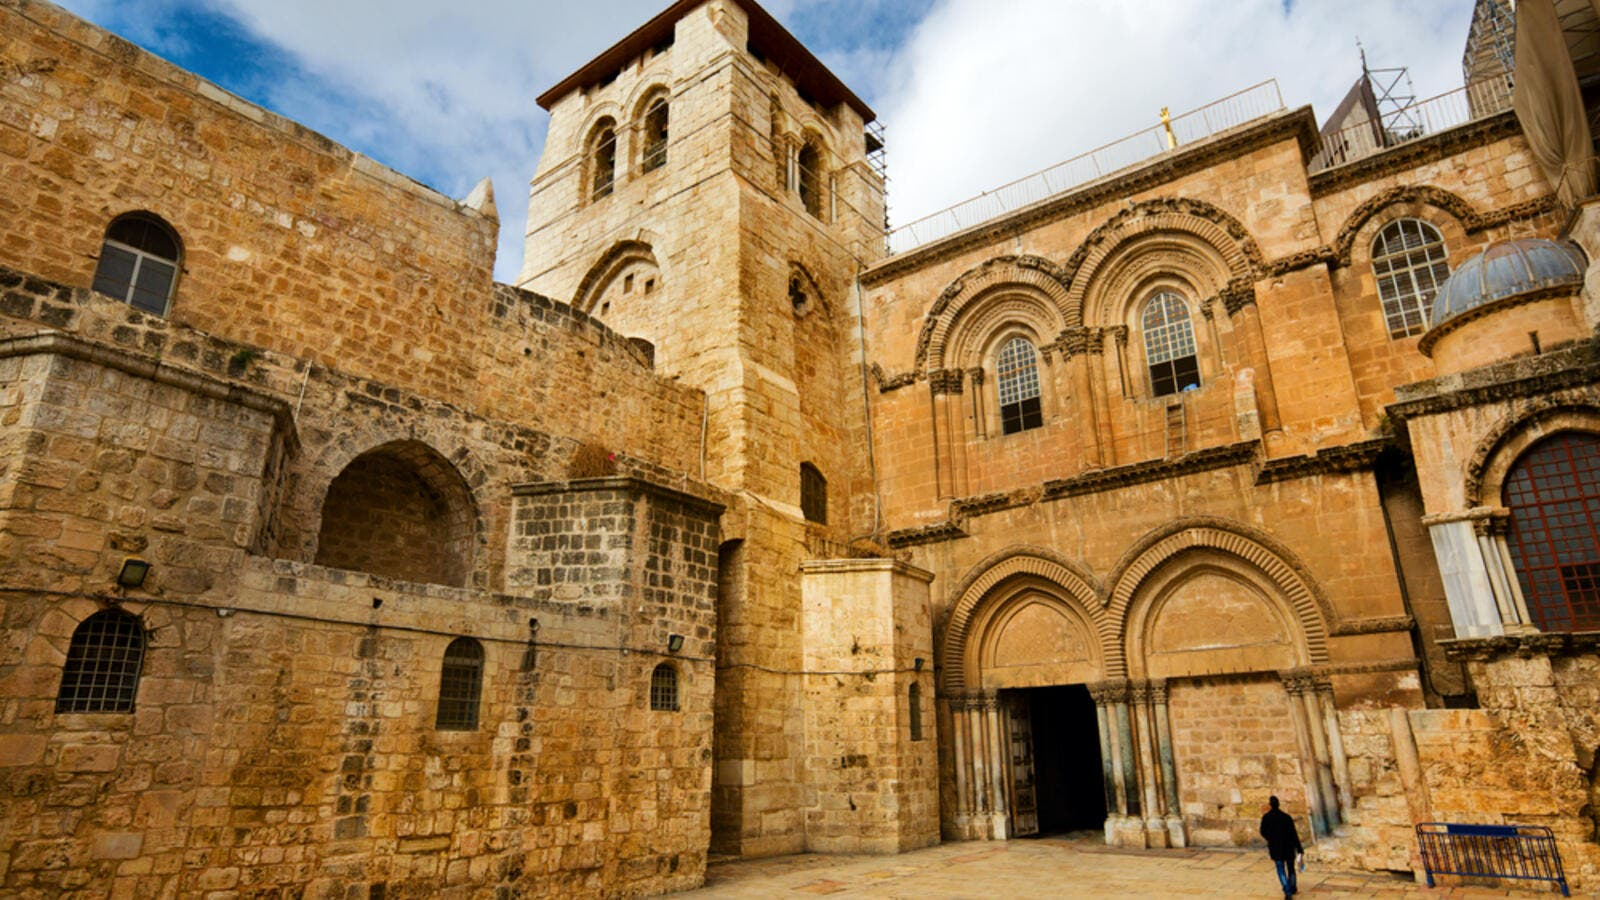 The entrance to the Church of the Holy Sepulchre, which houses Christ's Tomb, is seen in the old city of Jerusalem. (Shutterstock)